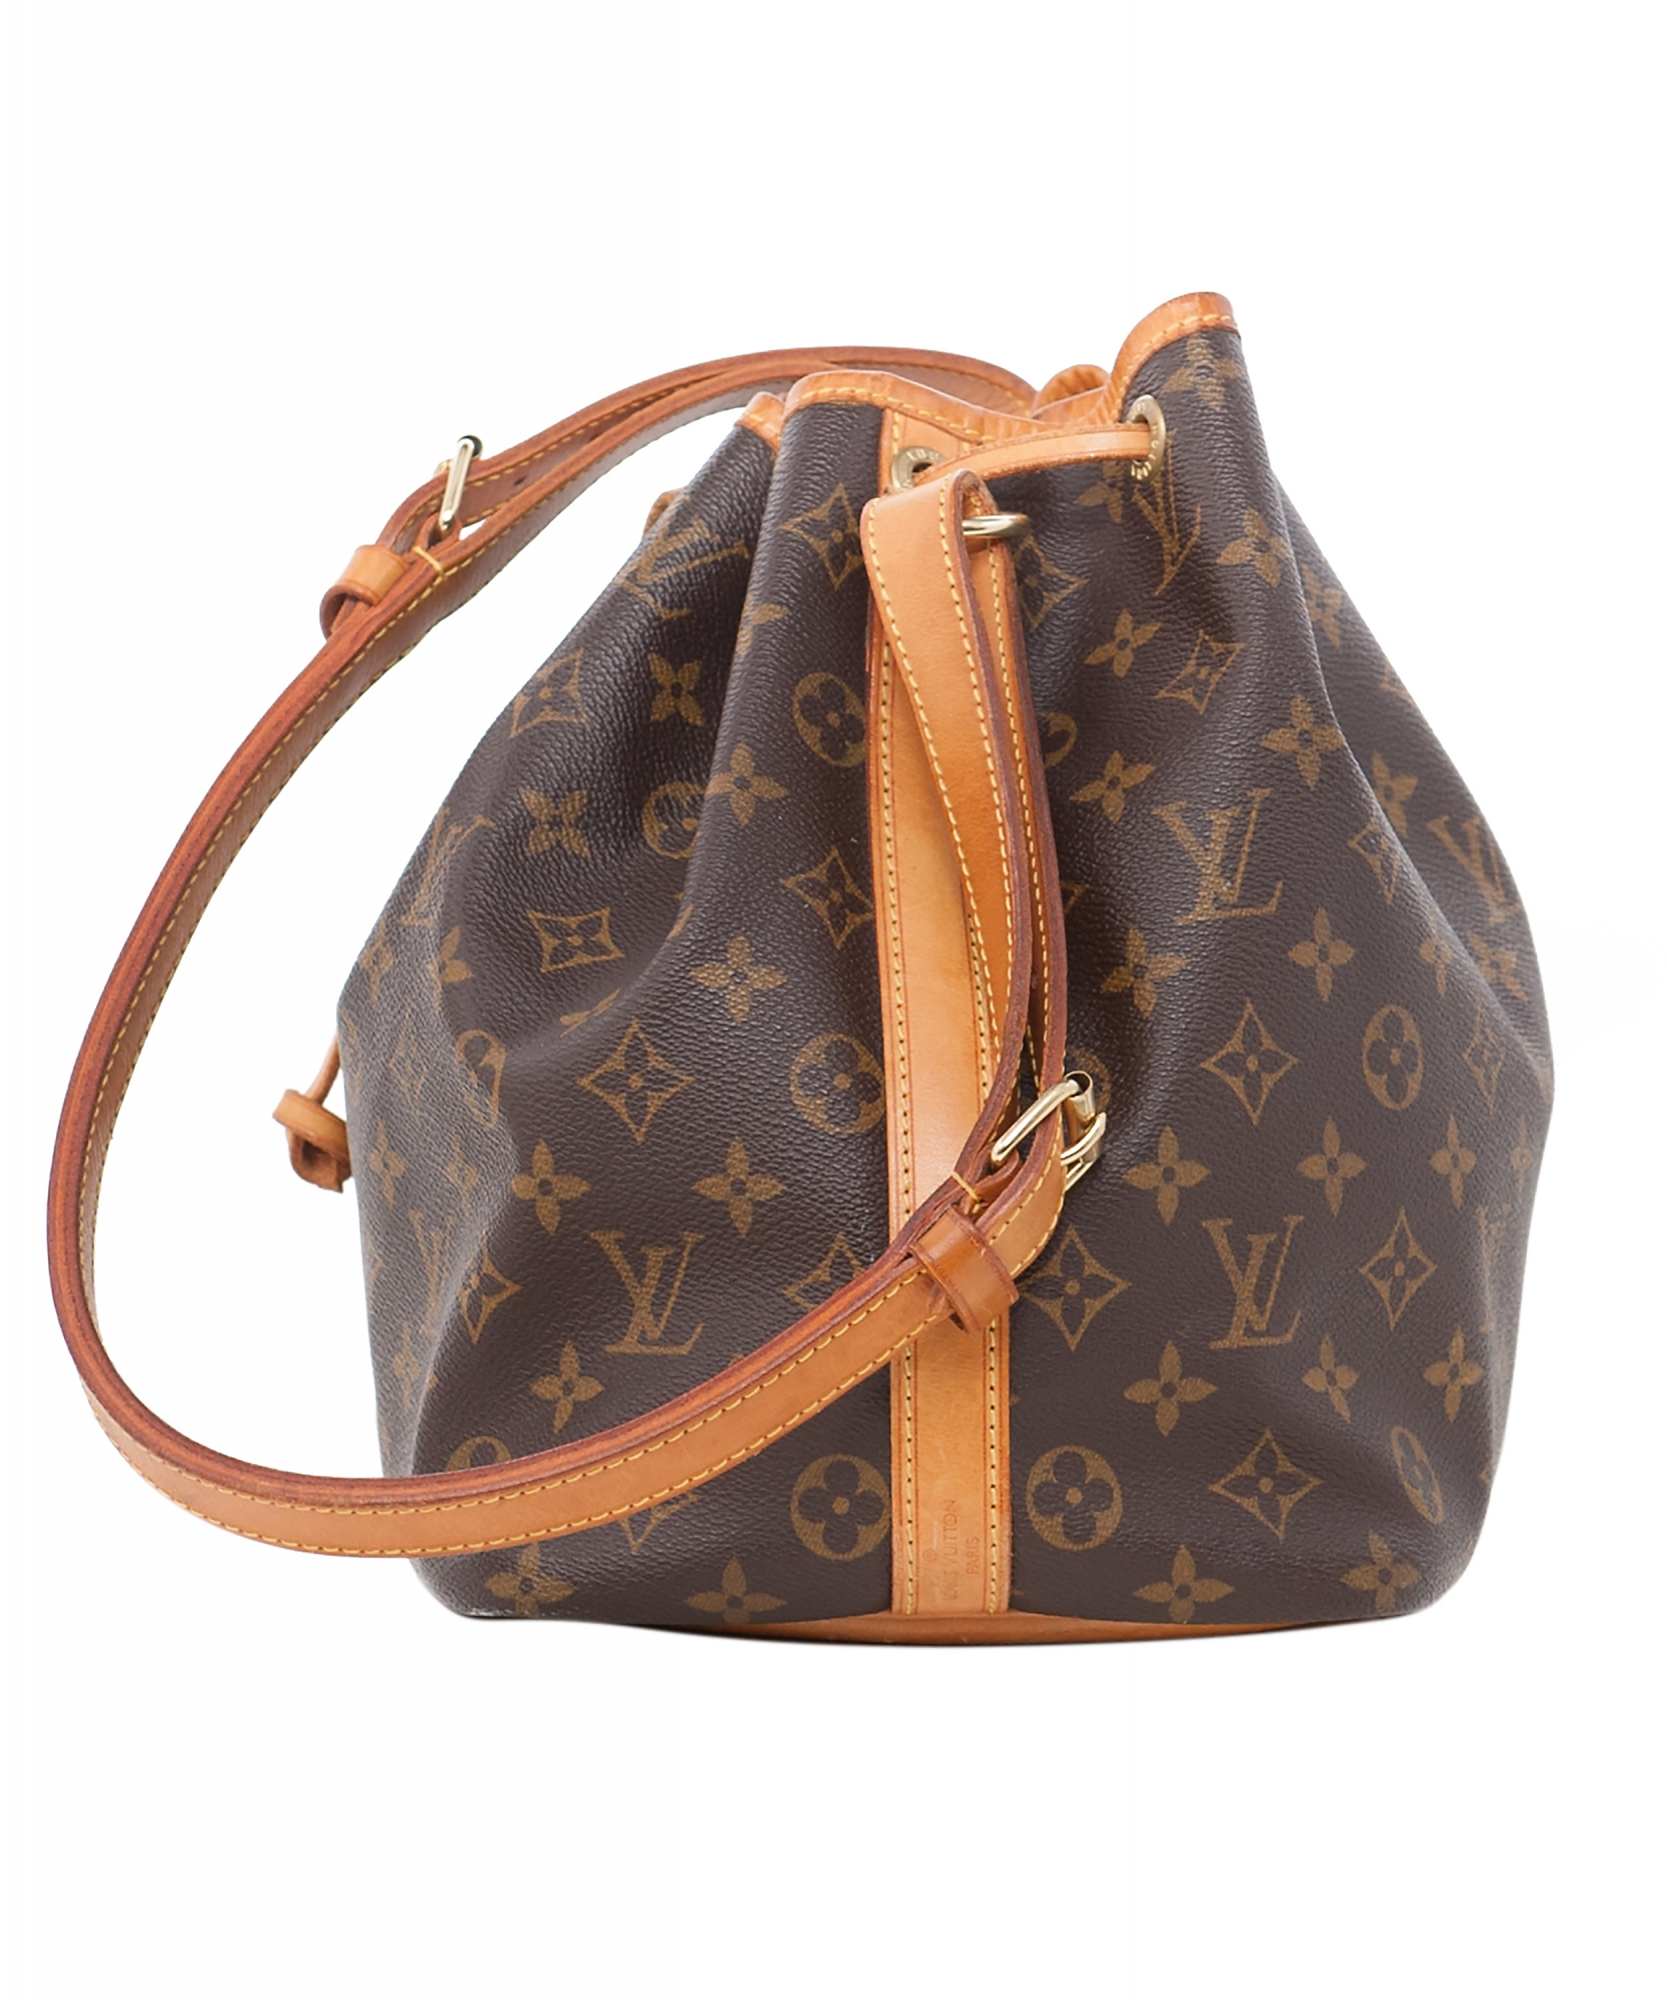 louis vuitton petit no monogram canvas shoulder bag artlistings. Black Bedroom Furniture Sets. Home Design Ideas